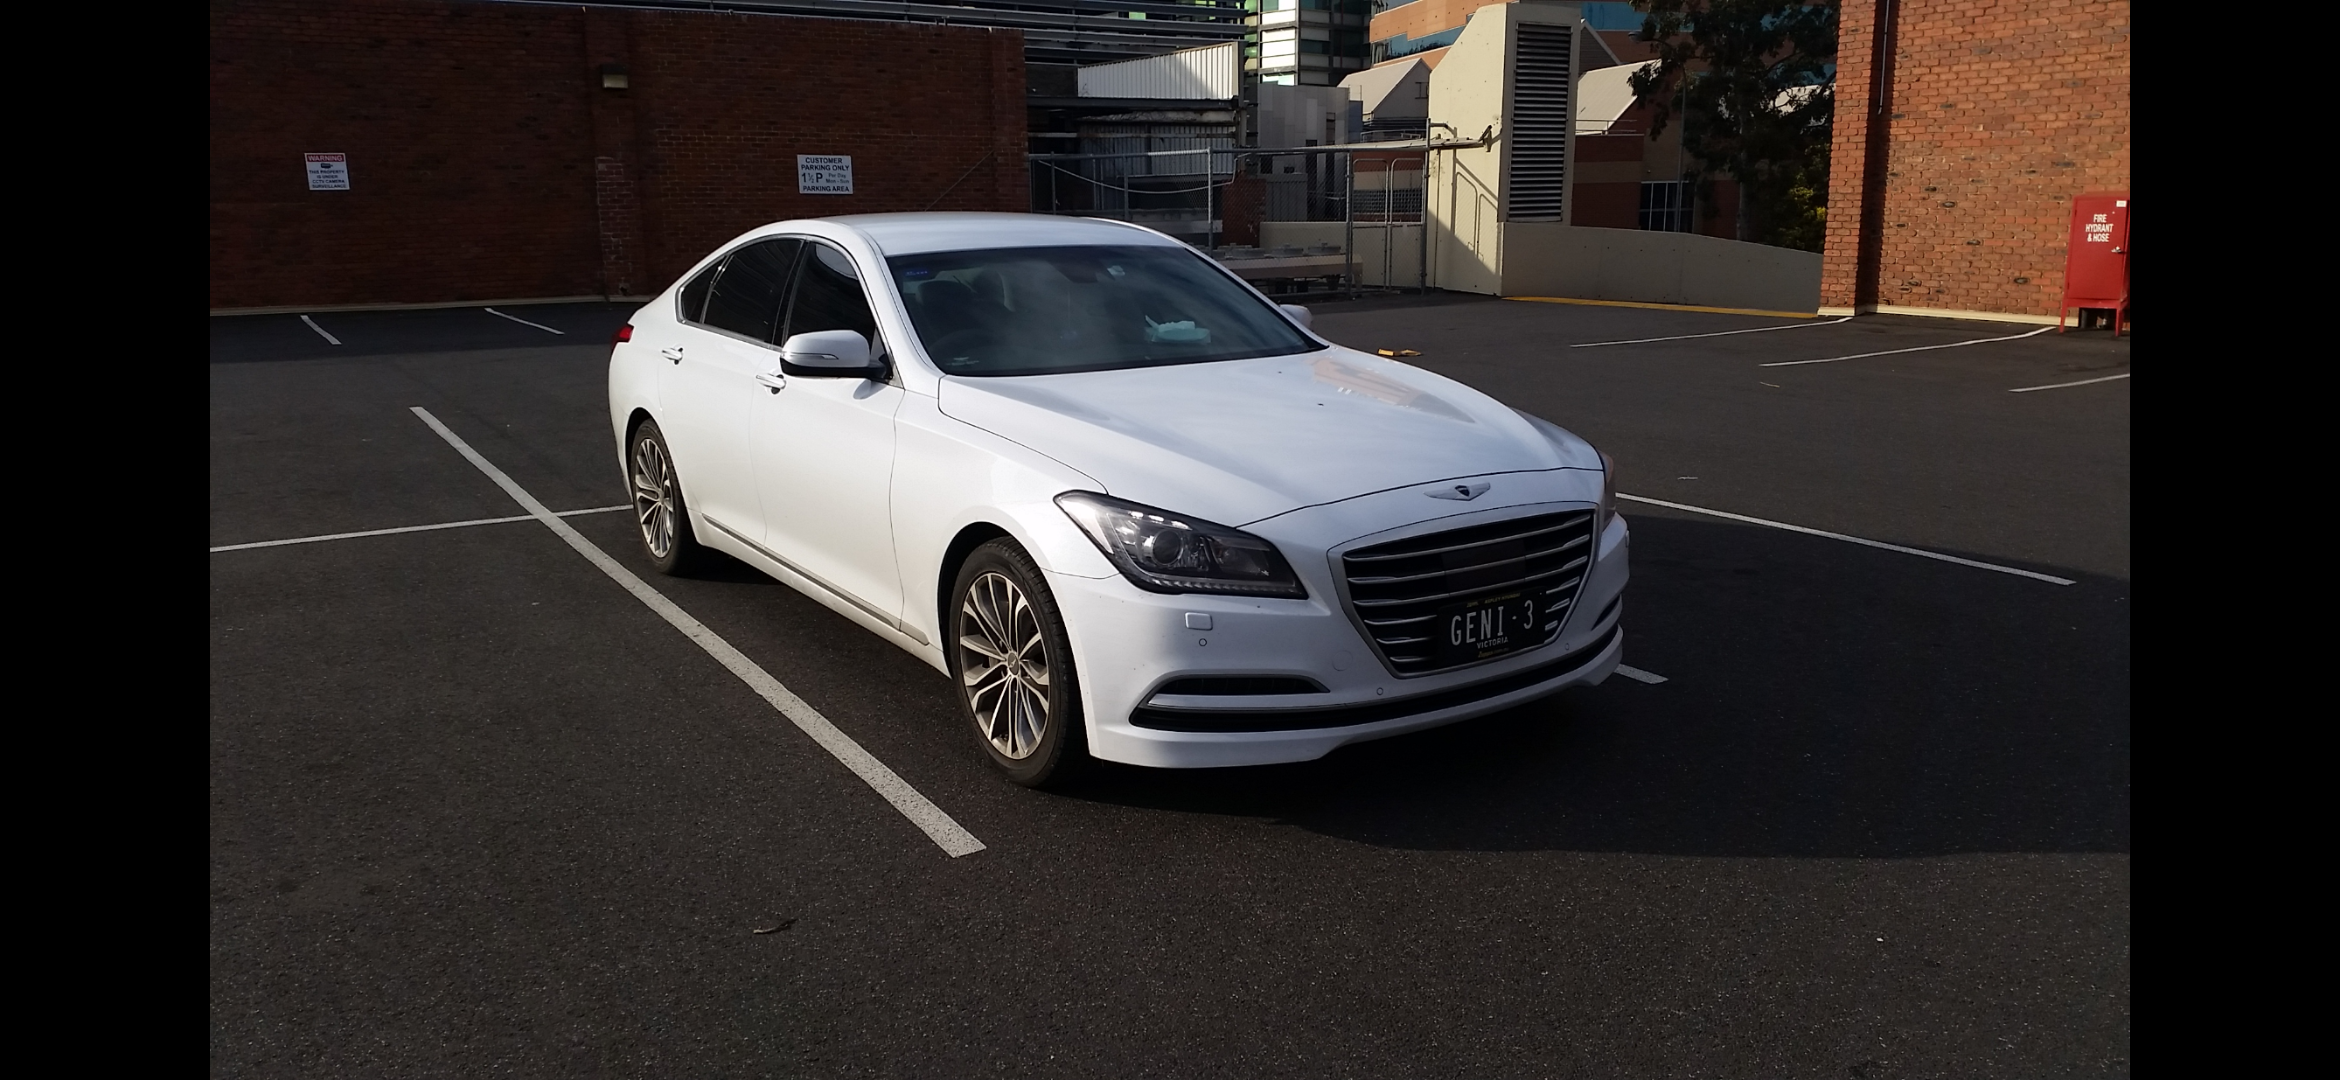 Picture of Hee Siong's 2014 Hyundai Genesis